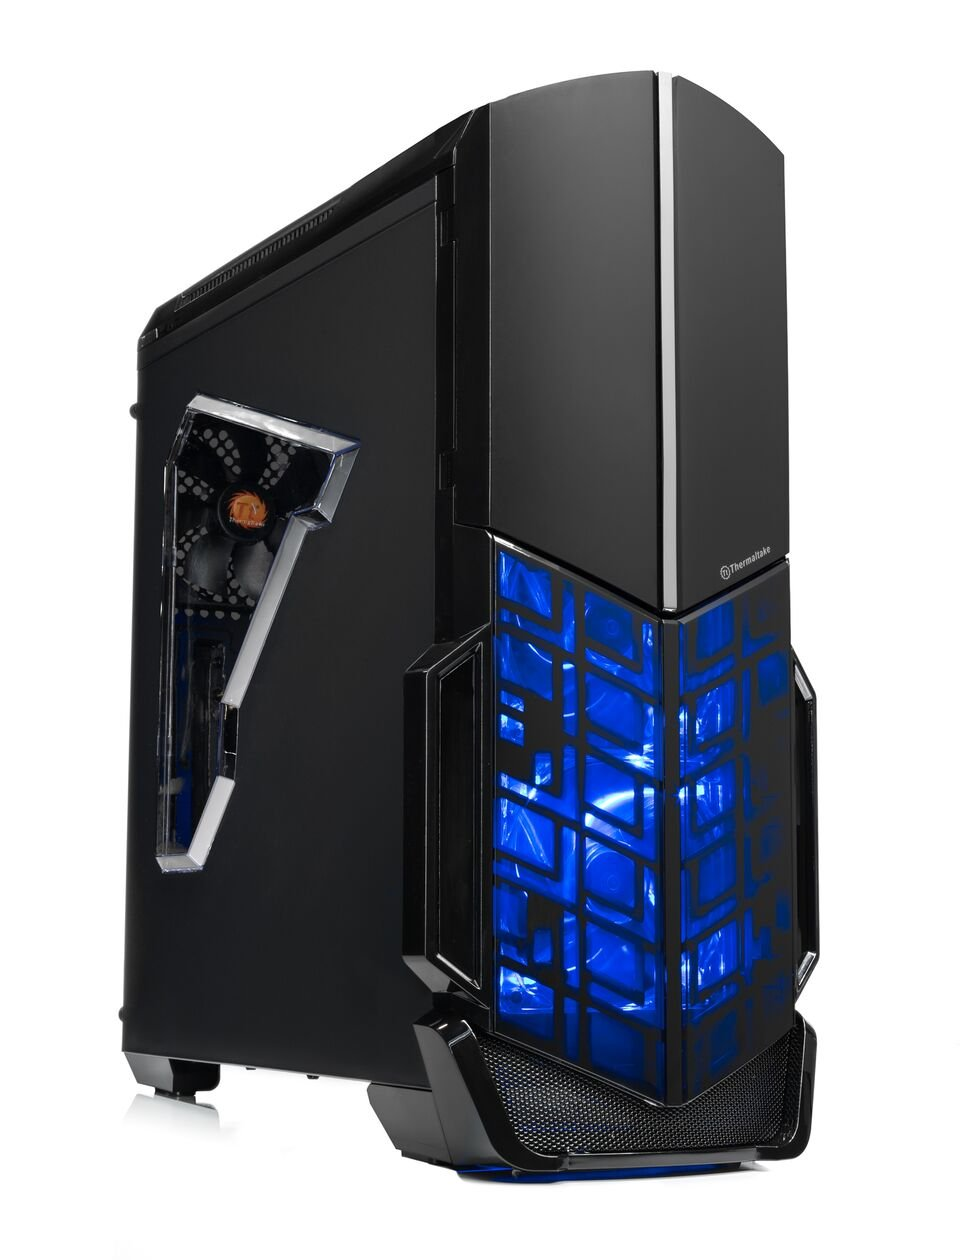 [Ryzen & GTX 1060 Edition] SkyTech Shadow Gaming Computer Desktop PC Ryzen 1200 3.1GHz Quad-Core, GTX 1060 3GB, 8GB DDR4 2400, 1TB HDD, 24X DVD, Wi-Fi USB, Windows 10 Home 64-bit